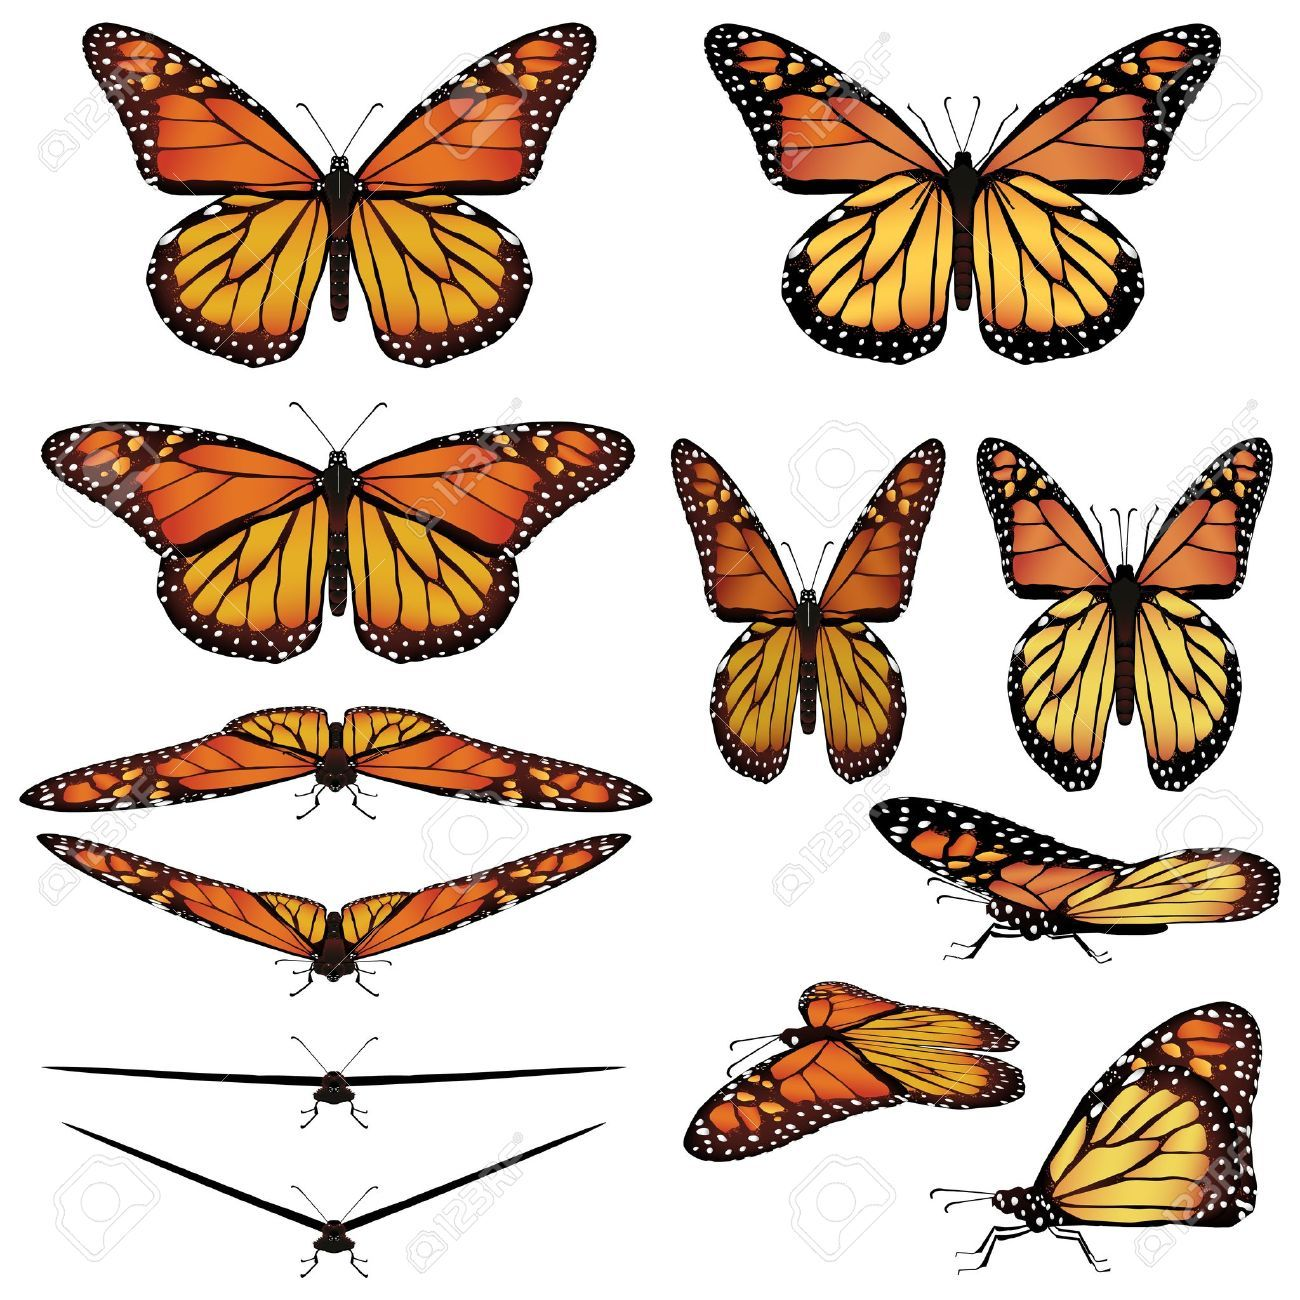 hight resolution of monarch butterfly google search